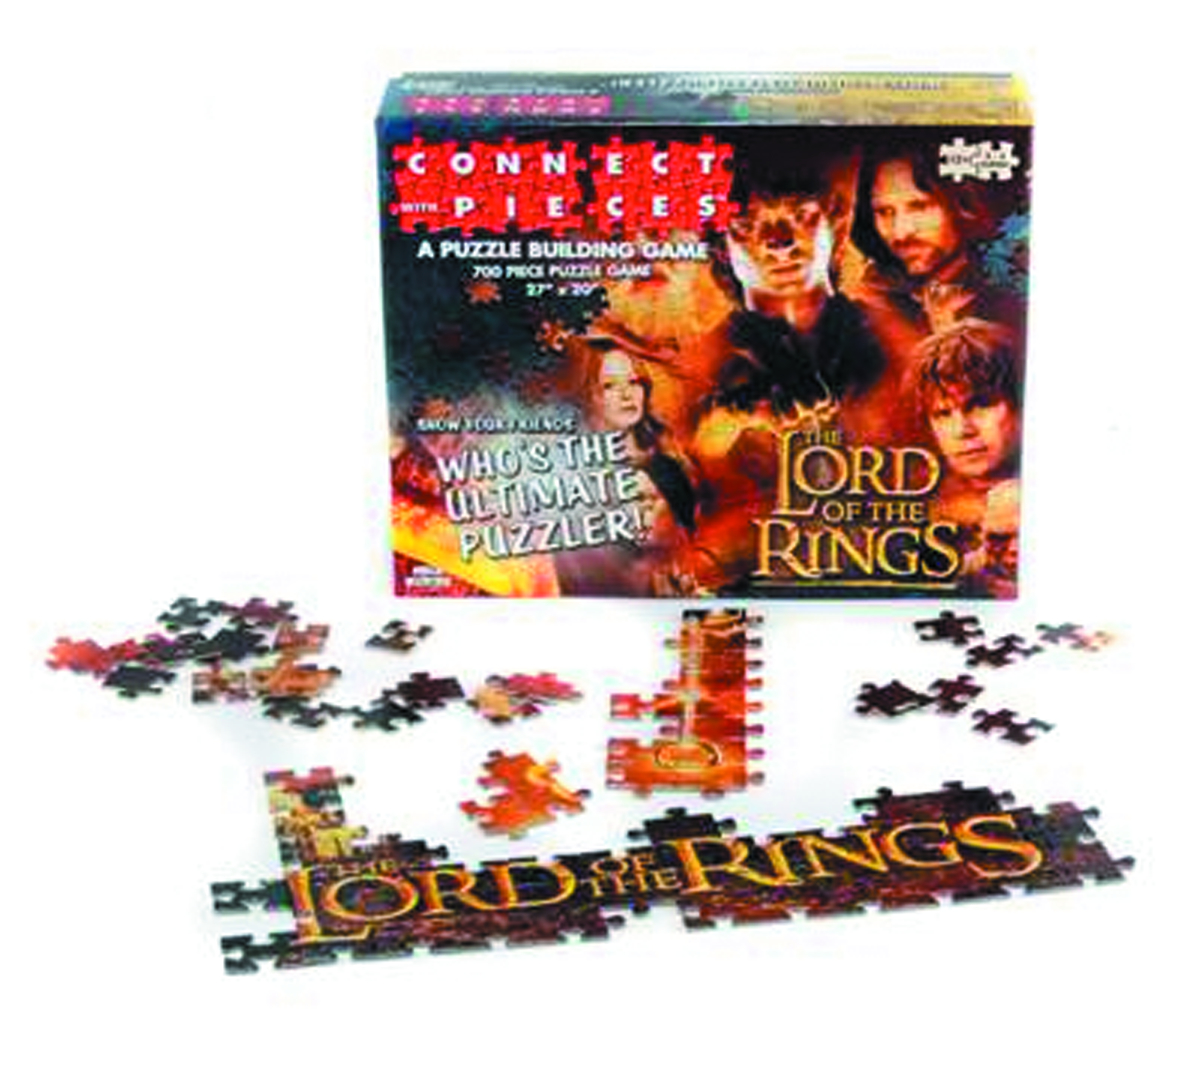 LOTR CONNECT WITH PIECES PUZZLE BUILDING GAME